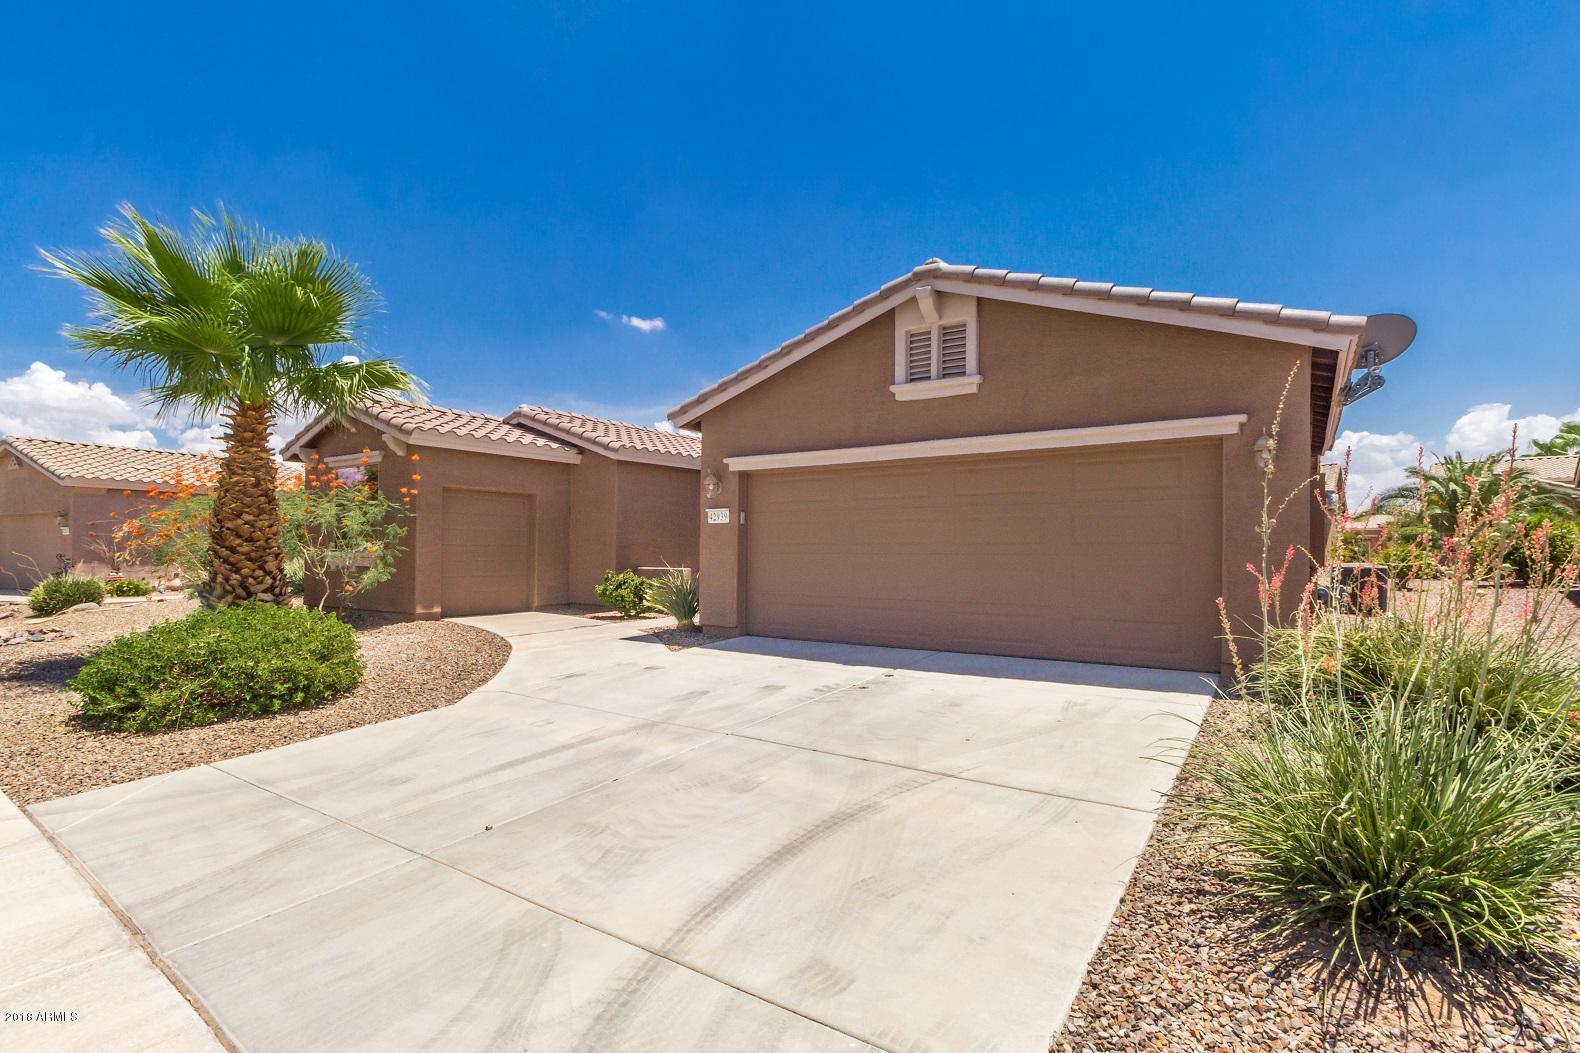 MLS 5798716 42939 W MORNING DOVE Lane, Maricopa, AZ 85138 Maricopa AZ Bank Owned